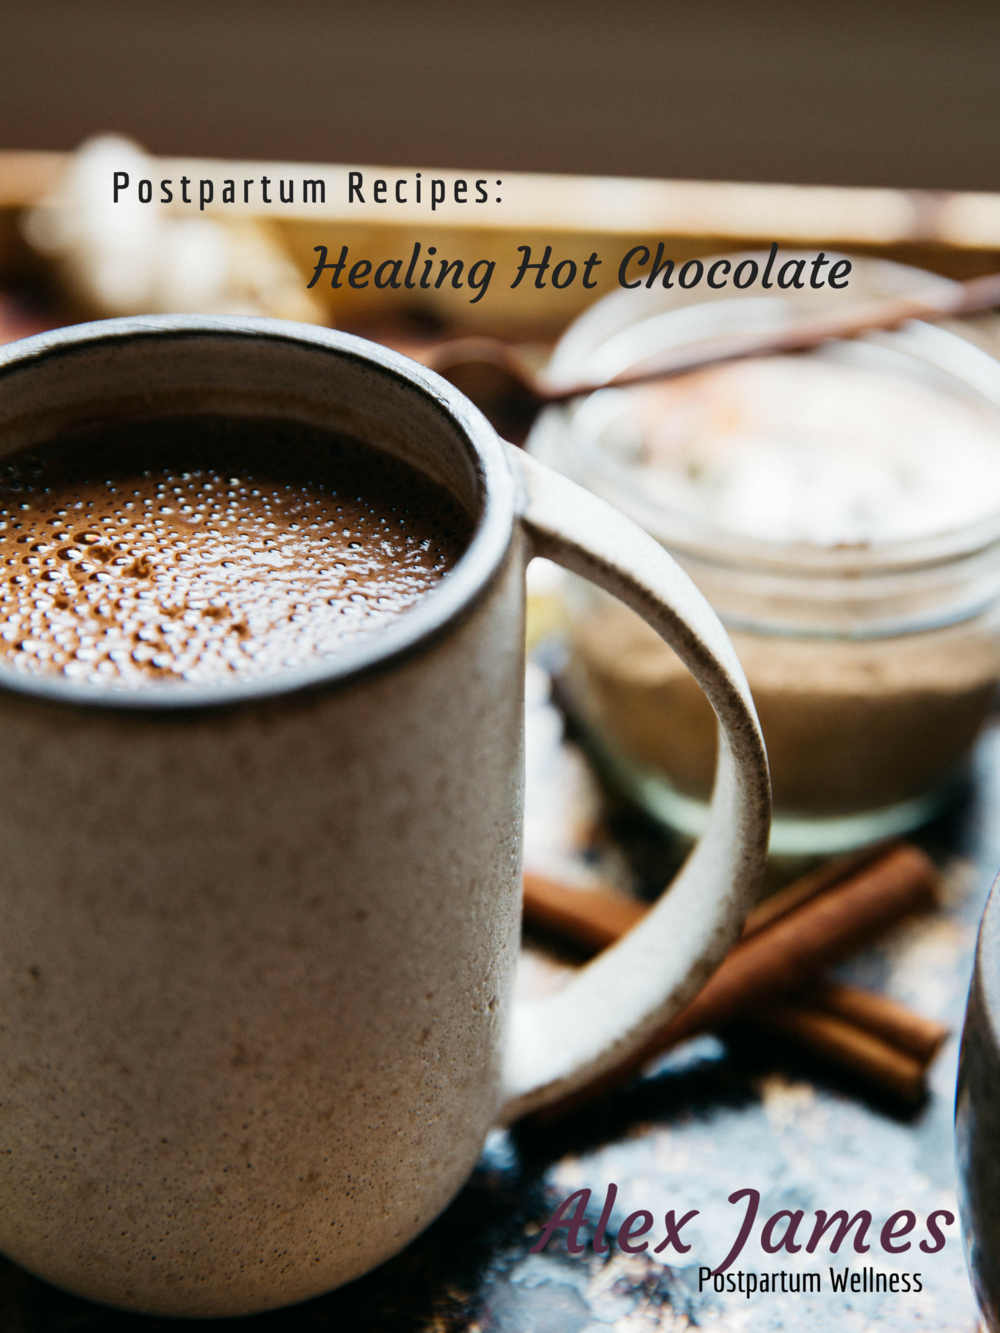 Postpartum Recipes_ Healing Hot Chocolate.png